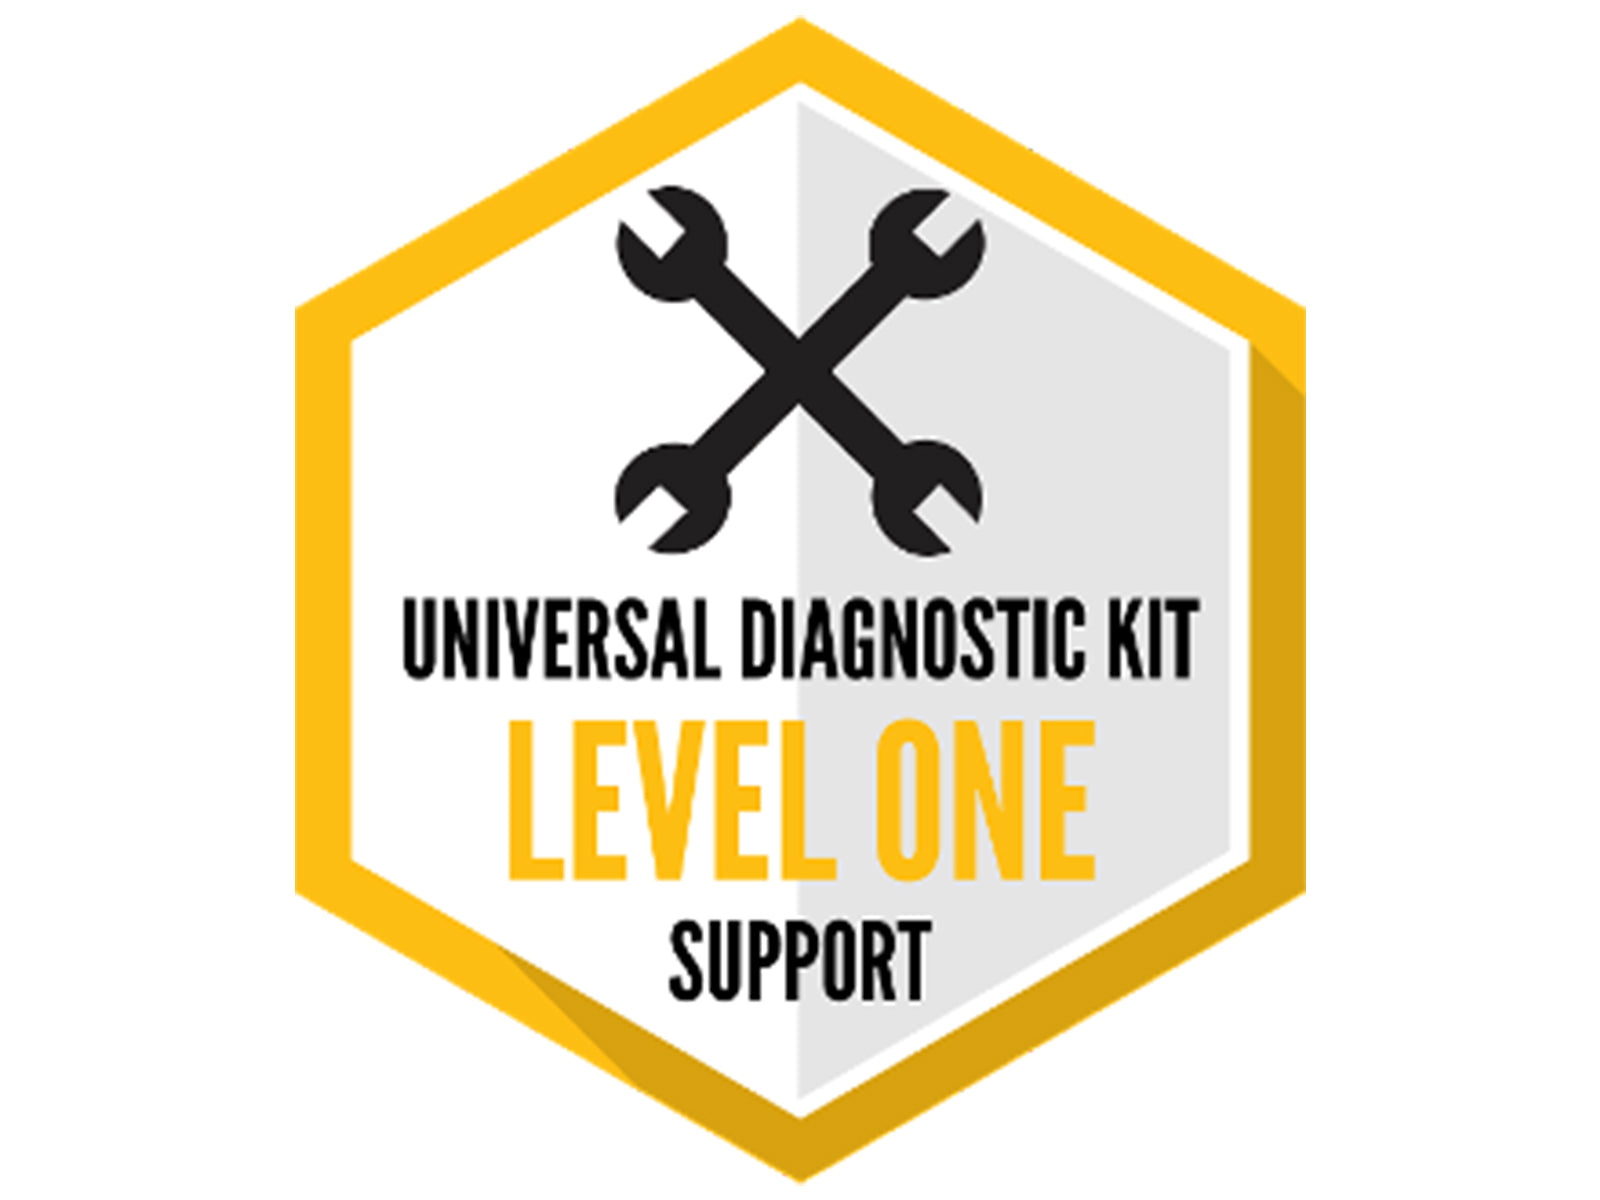 Universal Diagnostic Kit Support - Level 1 (Basic)